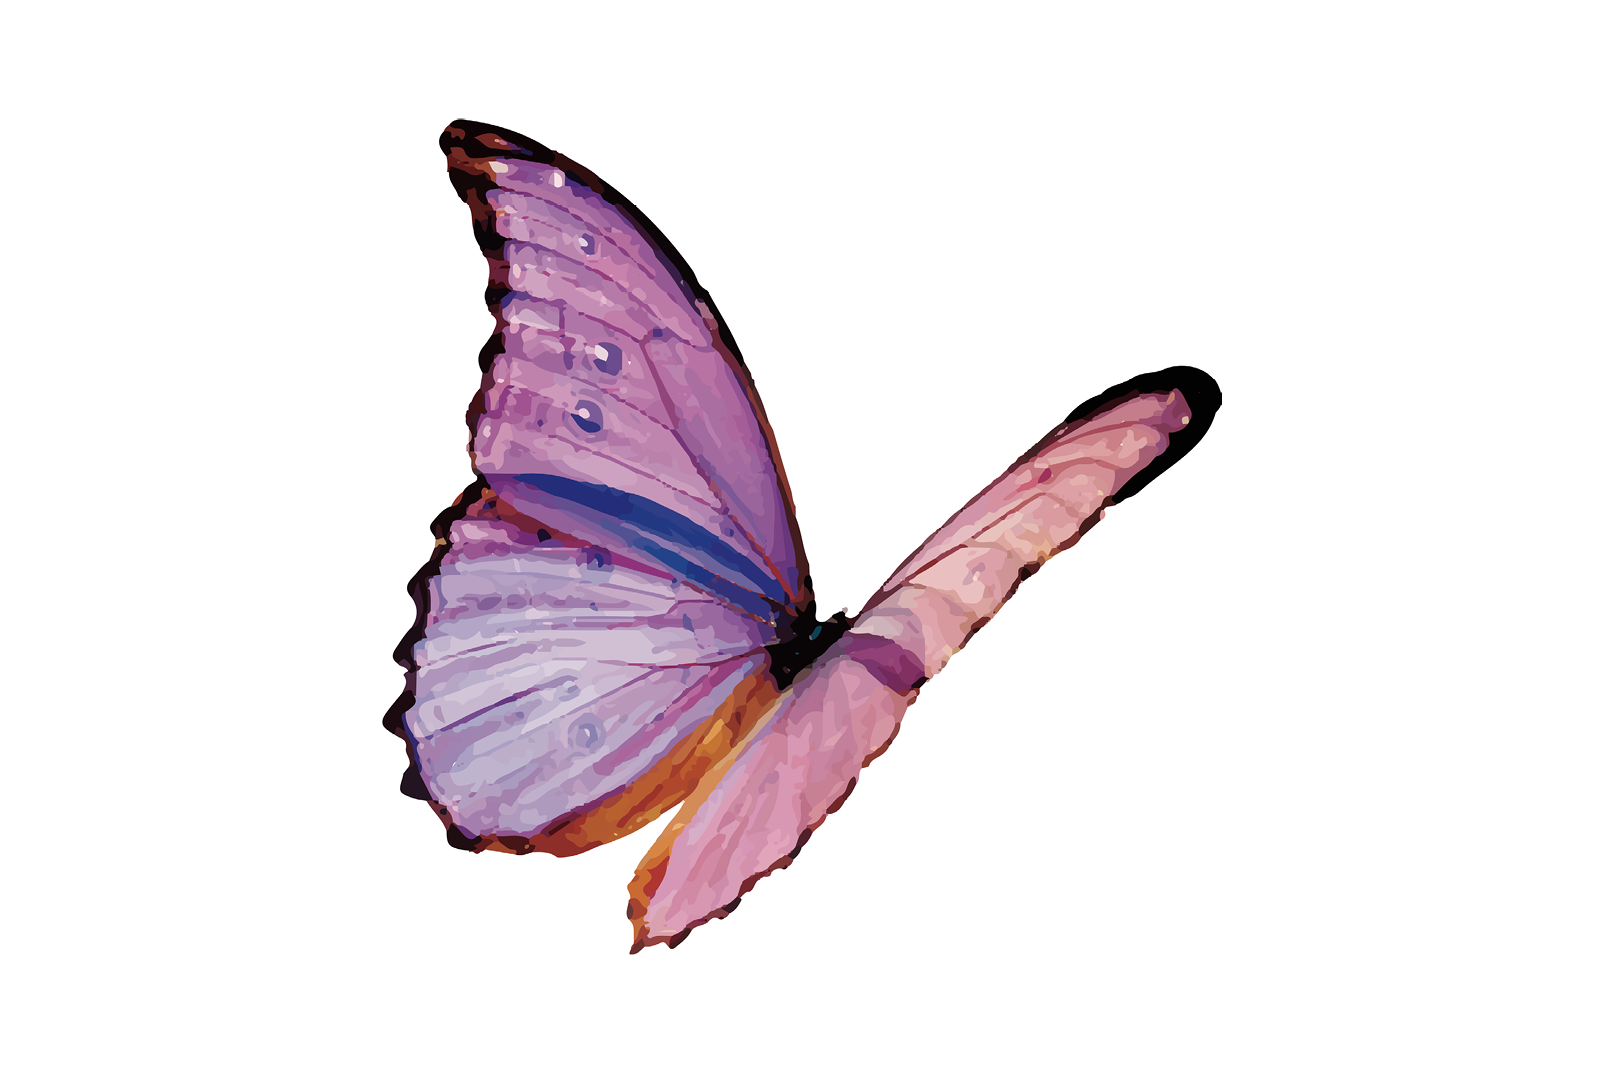 image of a purple butterfly